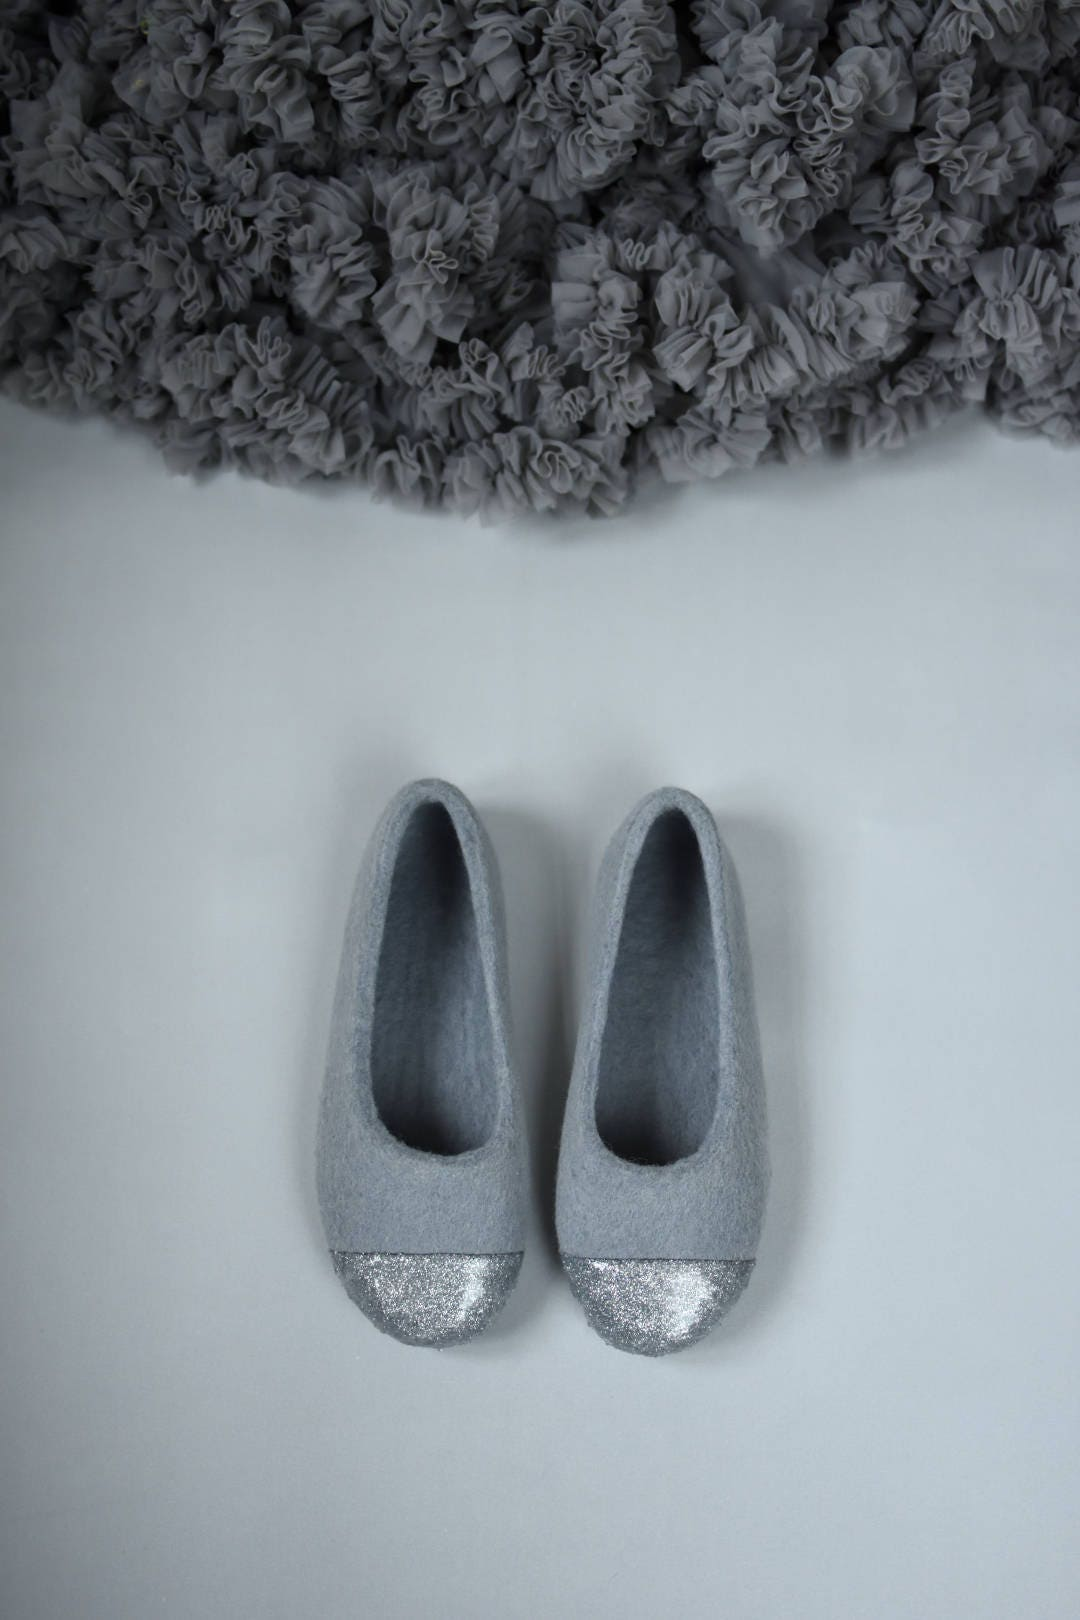 Grey Felted Slippers With Silver Glitter Decoration Felt Slippers